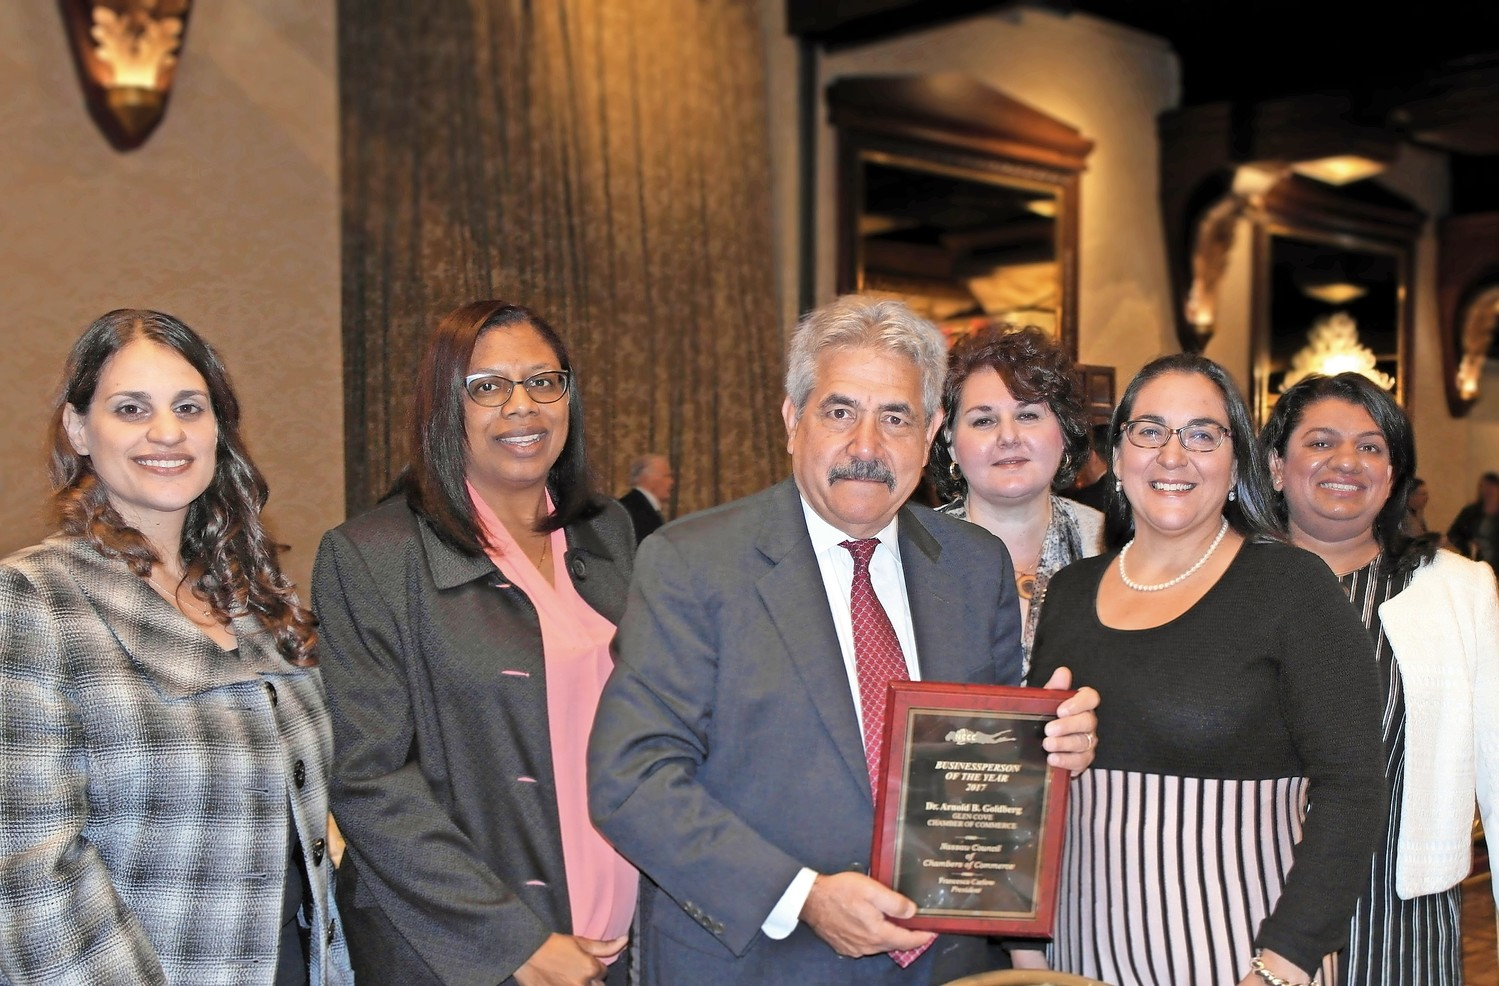 Dr. Arnold Goldberg, the executive director of Harbor Child Care, was chosen by the Glen Cove Chamber of Commerce as Businessperson of the Year.